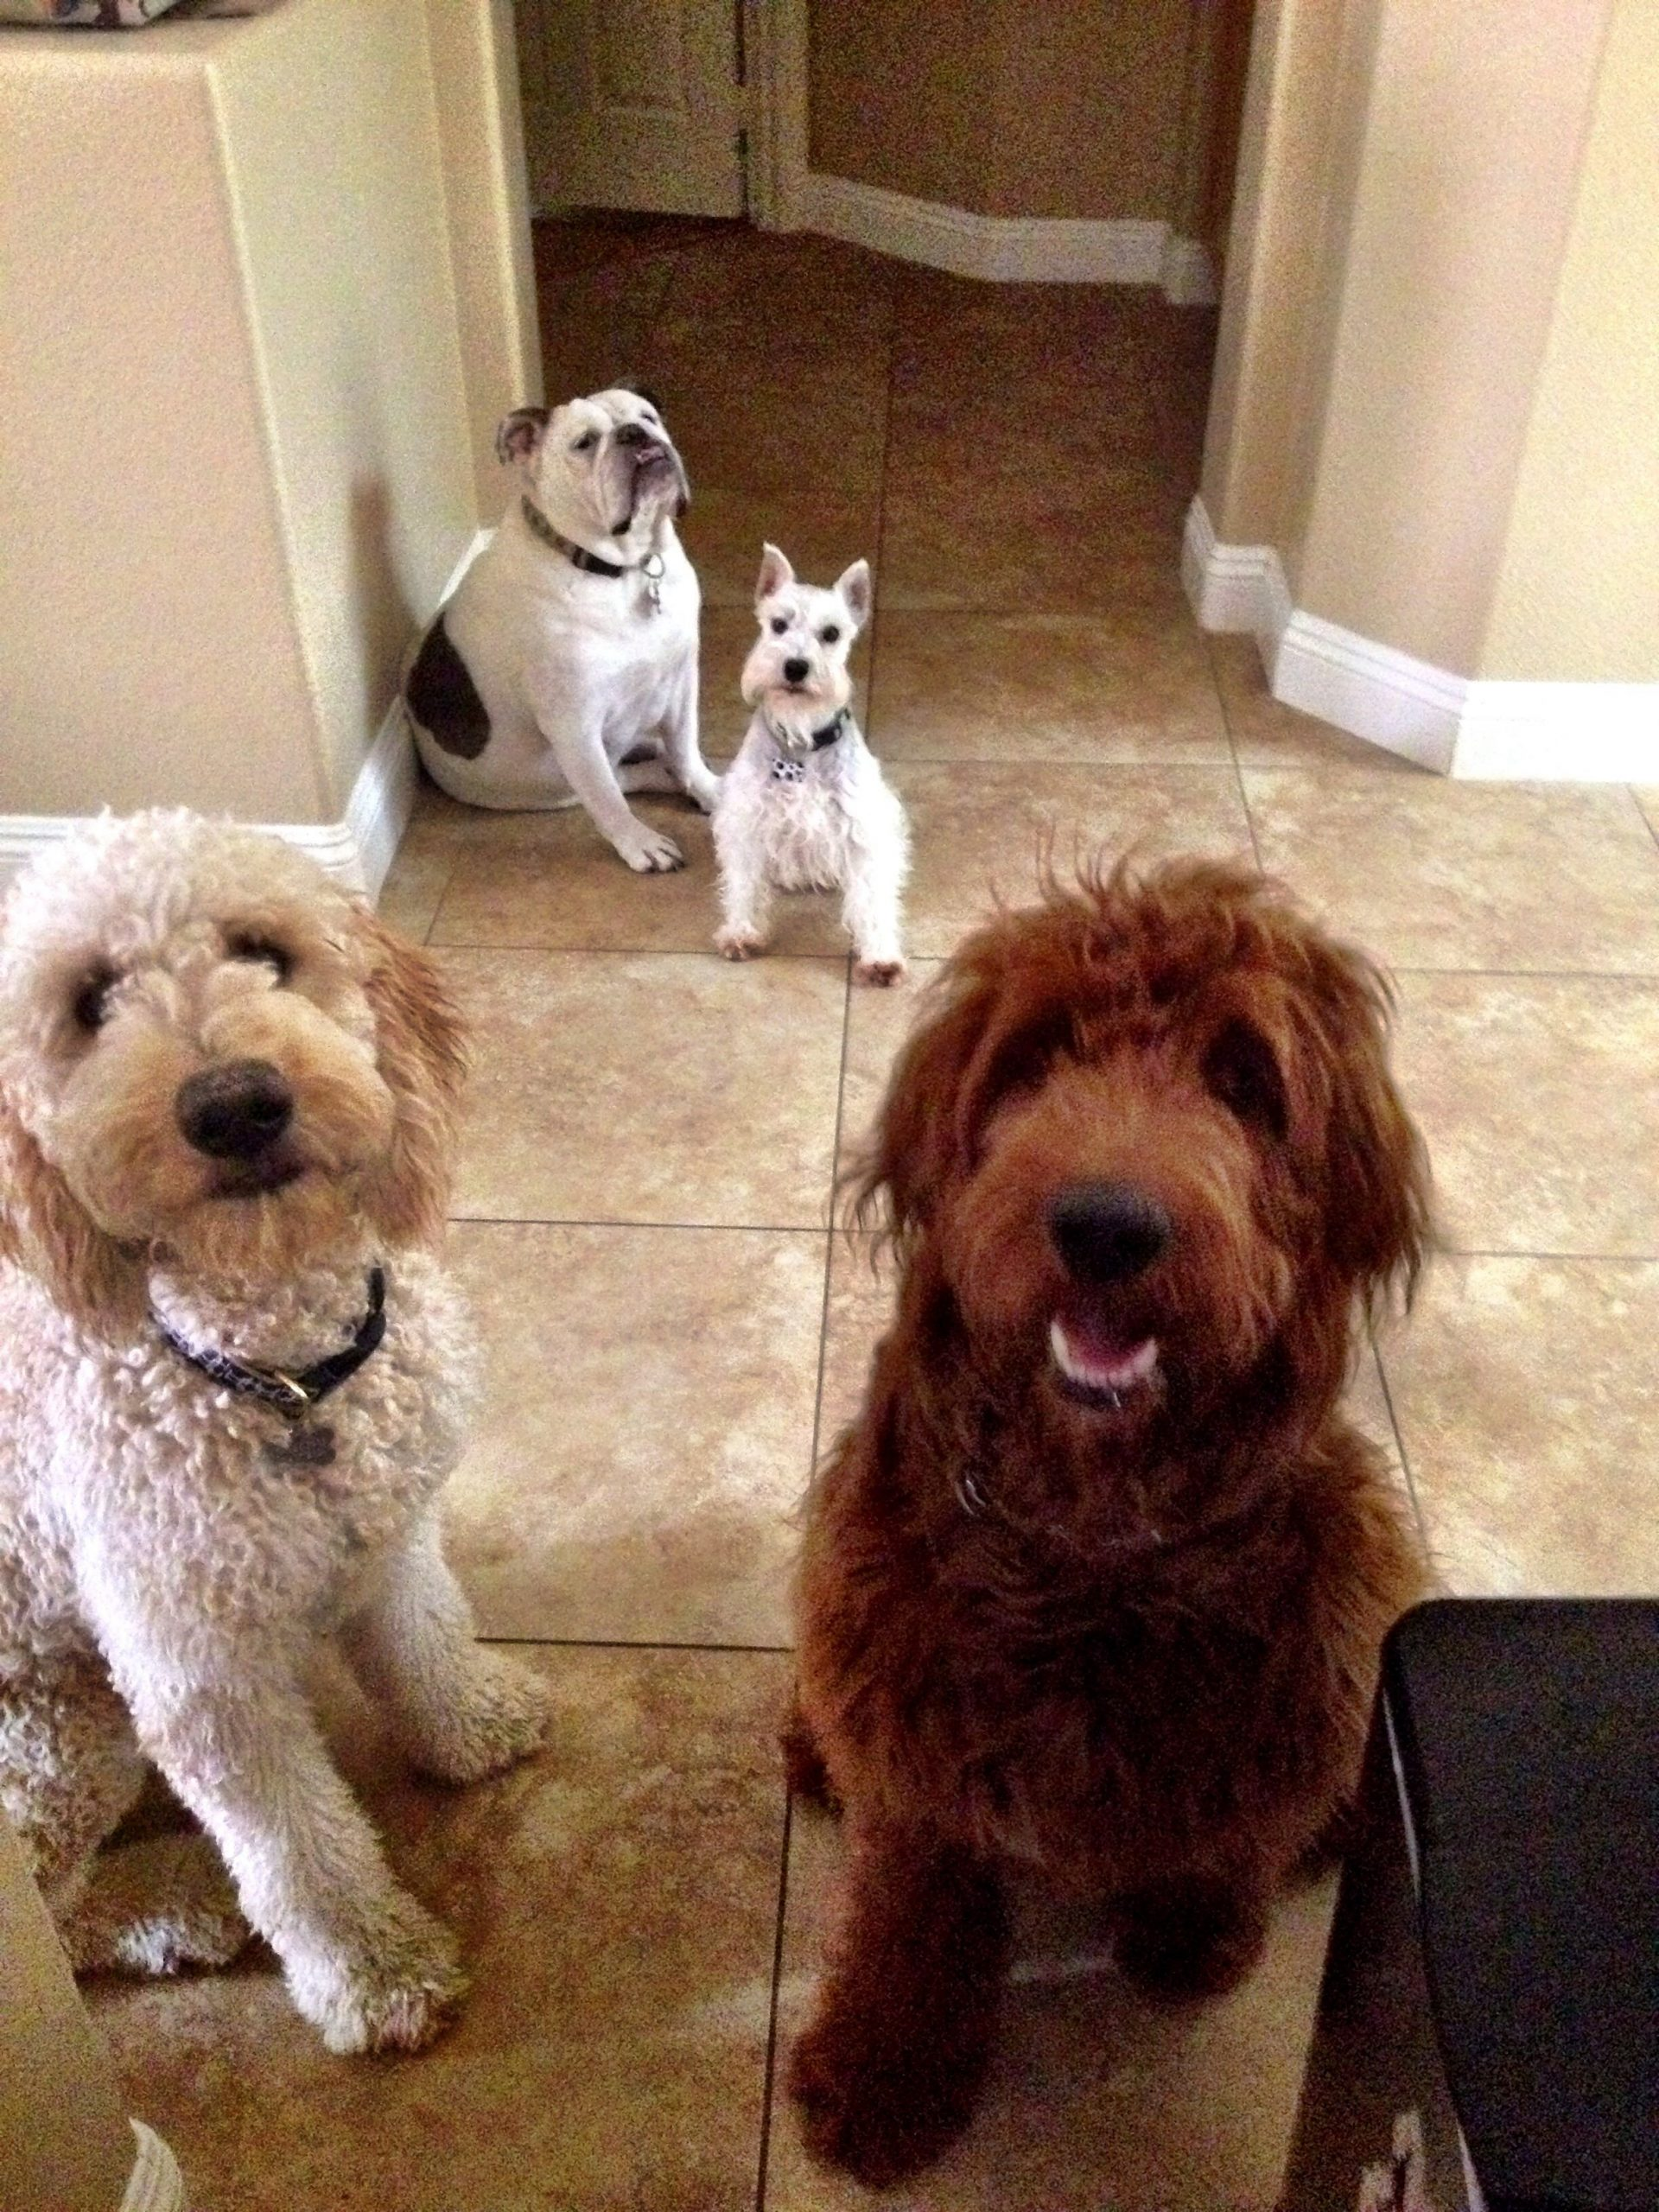 The Brat Pack @Hendrix The Doodle #Goldendoodles# Baby Due Date Doodle Poll